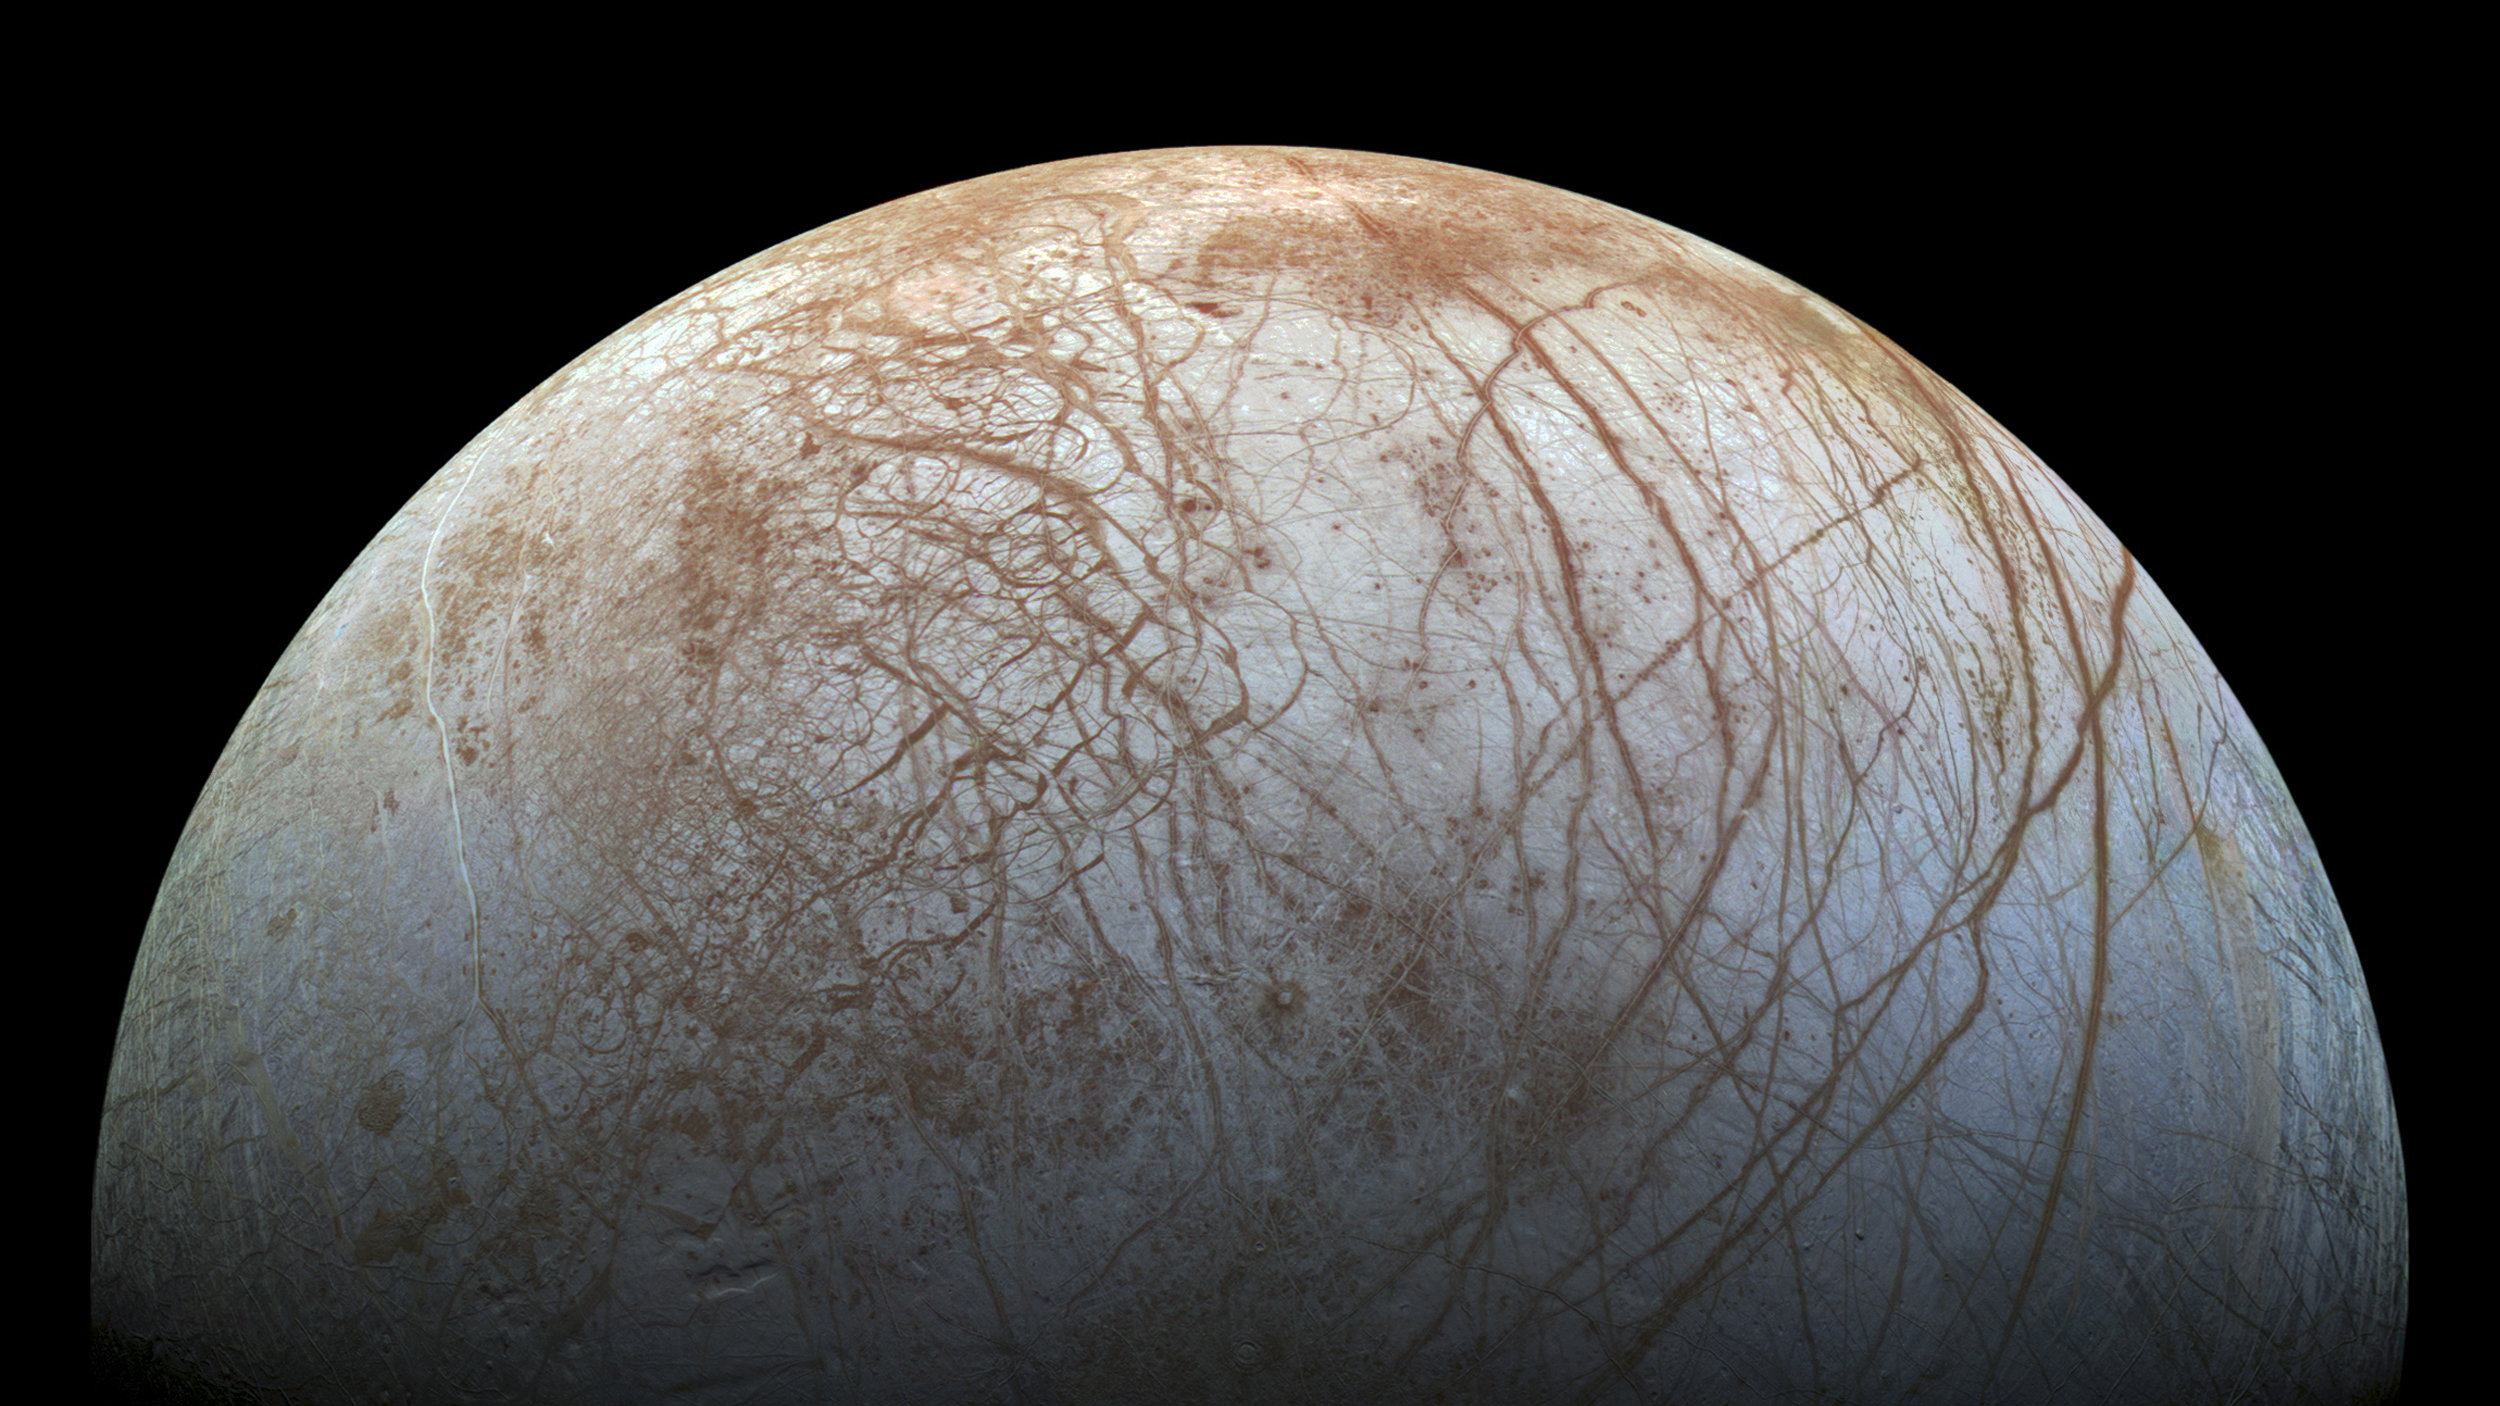 A new mosaic made from images taken by NASA's Galileo spacecraft in the late 1990's is shown of the surface of Jupiter's icy moon, Europa, as it looms large in this newly-reprocessed, higher resolution color view in this handout provided by NASA November 24, 2014. This newer version was created from images assembled into a realistic color view of the surface that approximates how Europa would appear to the human eye. NASA/JPL-Caltech/SETI Institue/Handout via Reuters